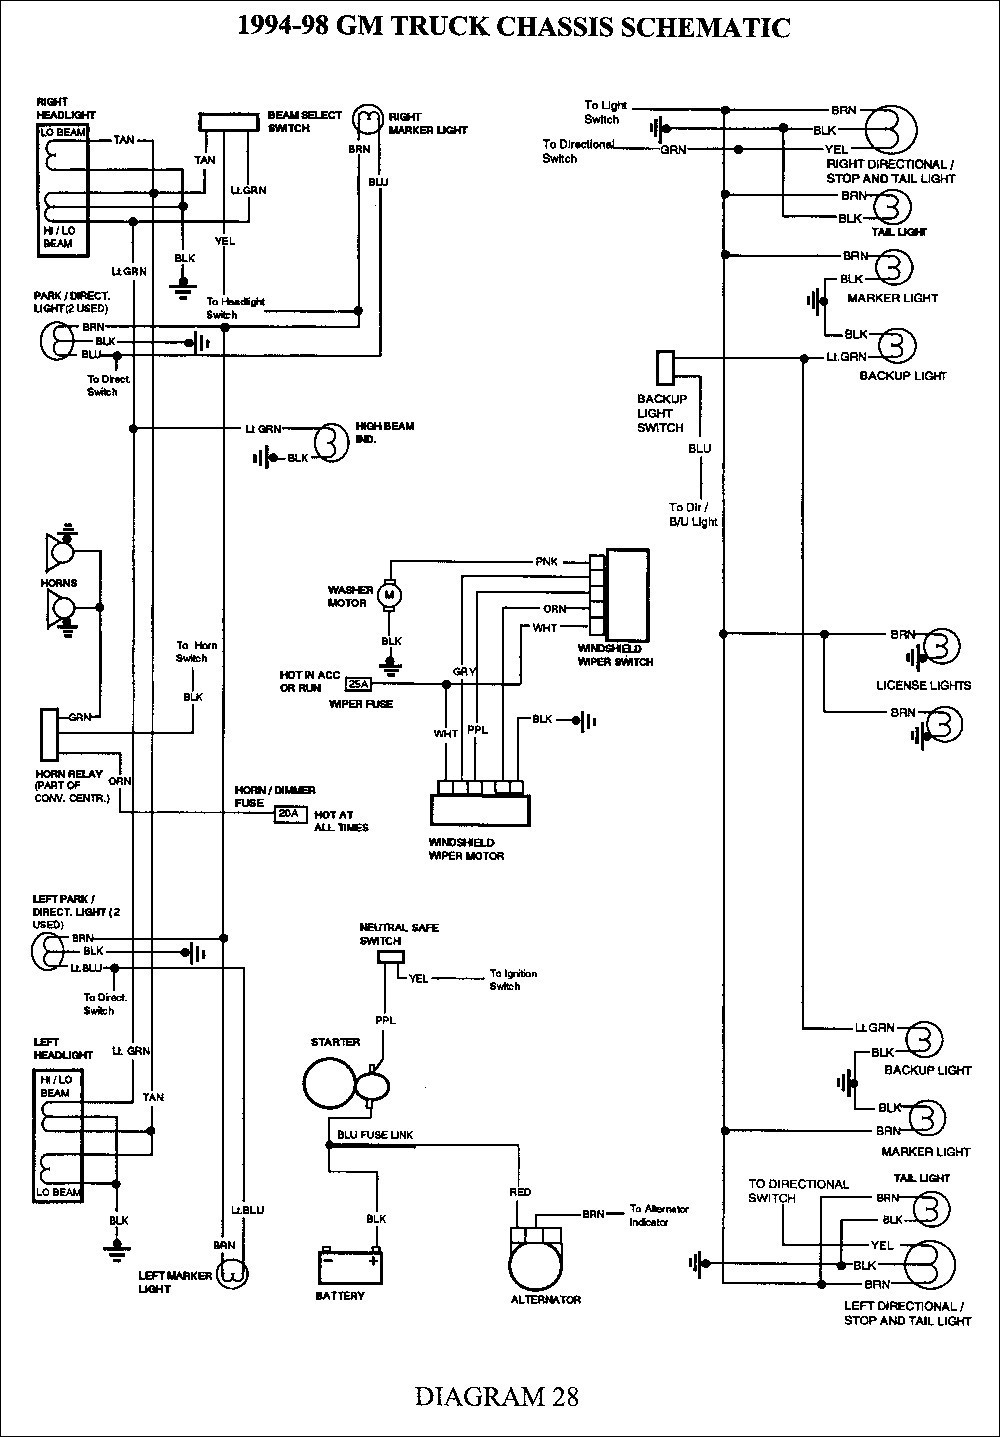 medium resolution of 2008 gmc truck wiring diagrams free wiring diagrams 2014 gmc savana wiring harness diagram free download